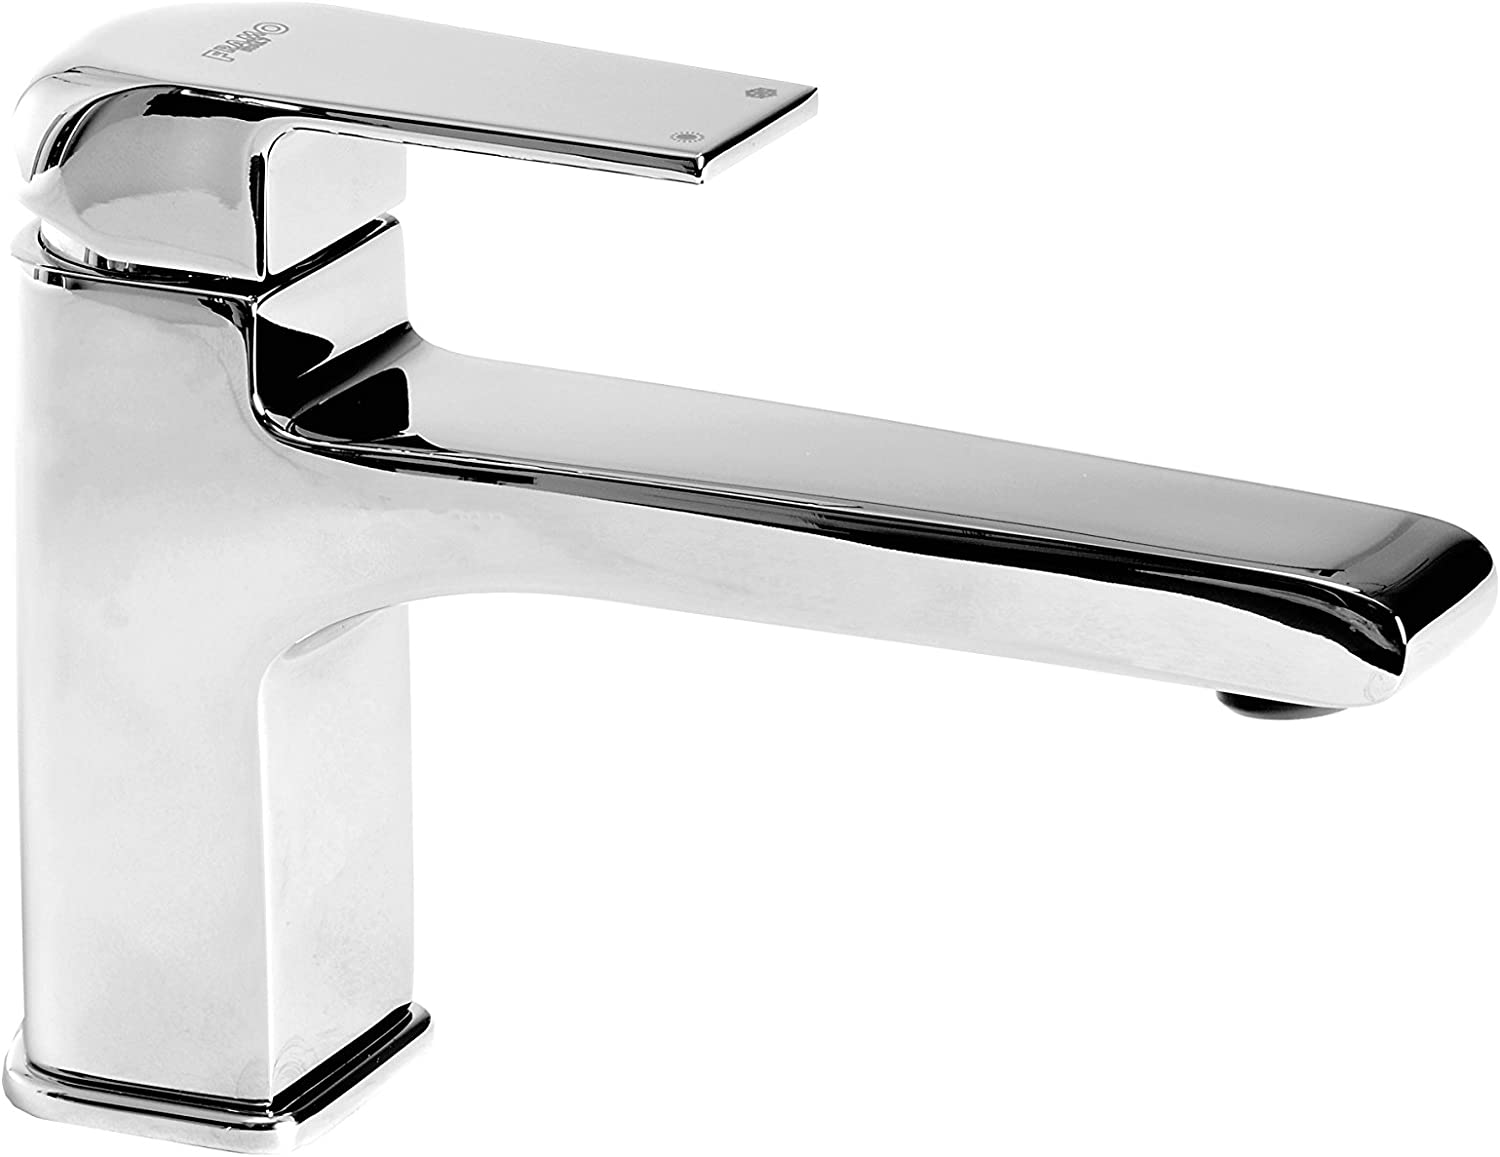 Mixer tap with long spout sink drain without Hope Framo for Bathroom Chrome